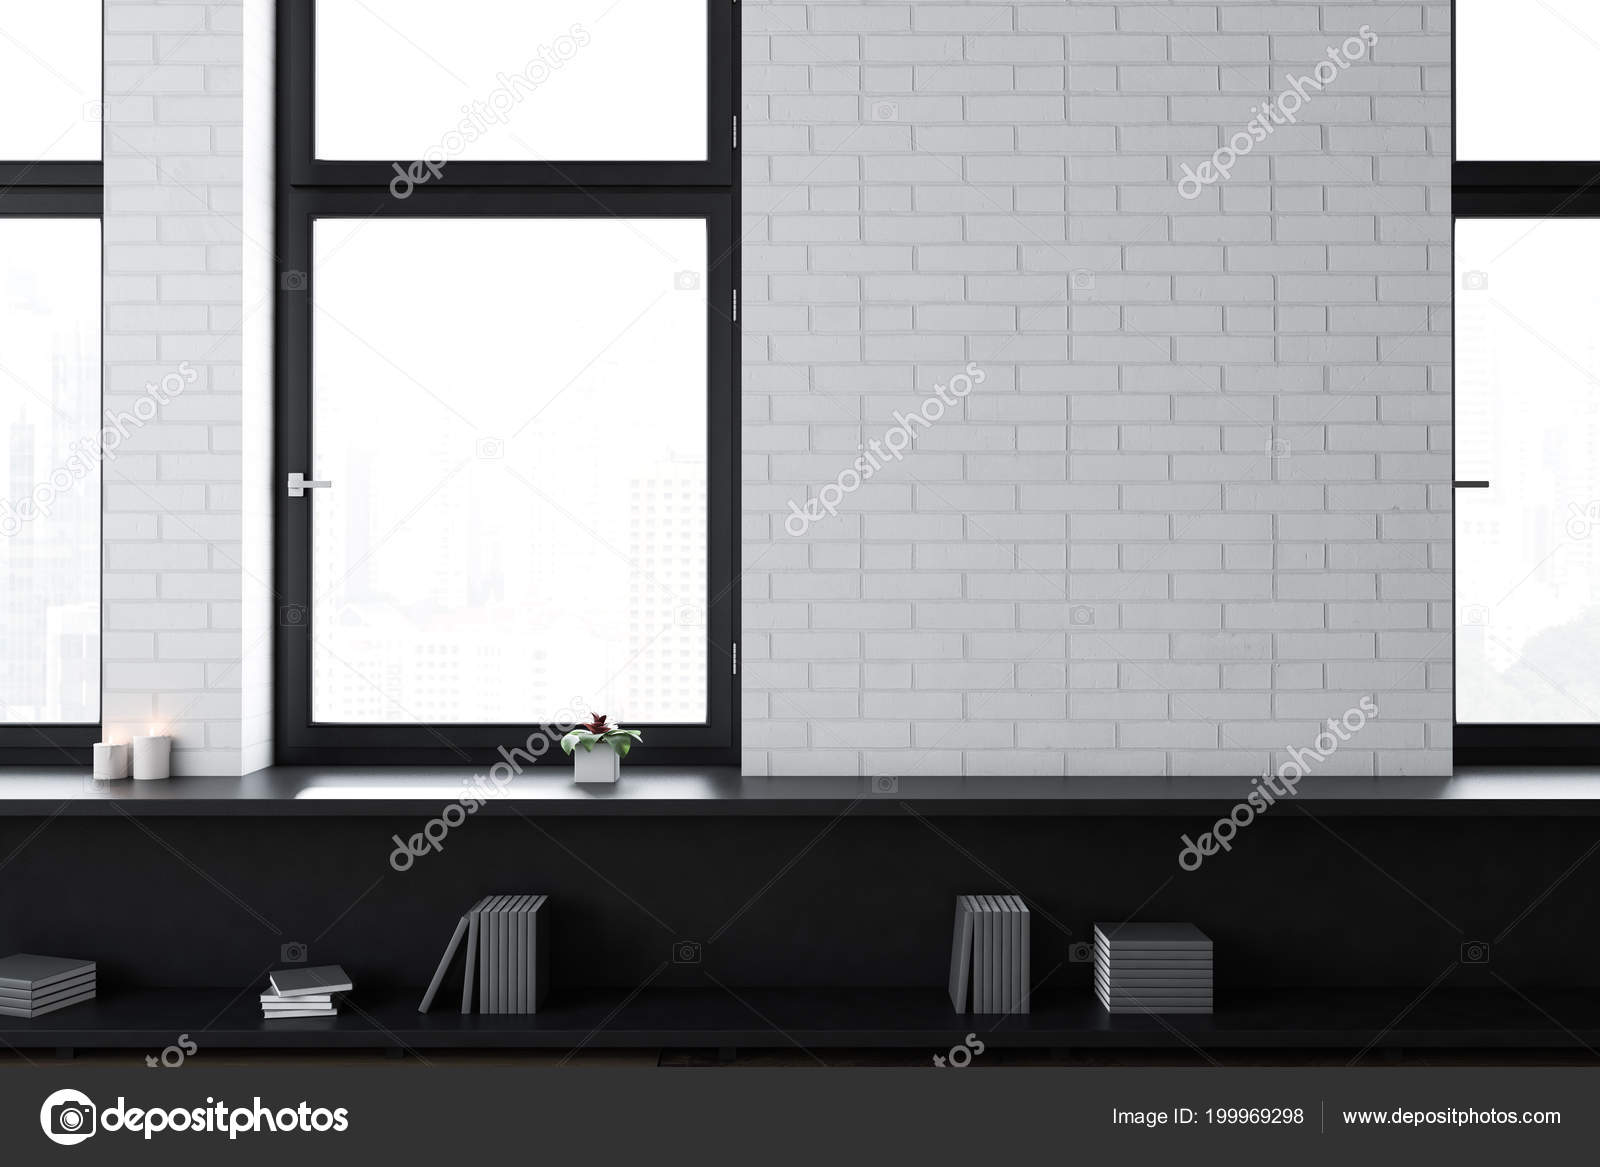 White Brick Empty Office Living Room Interior Loft Windows